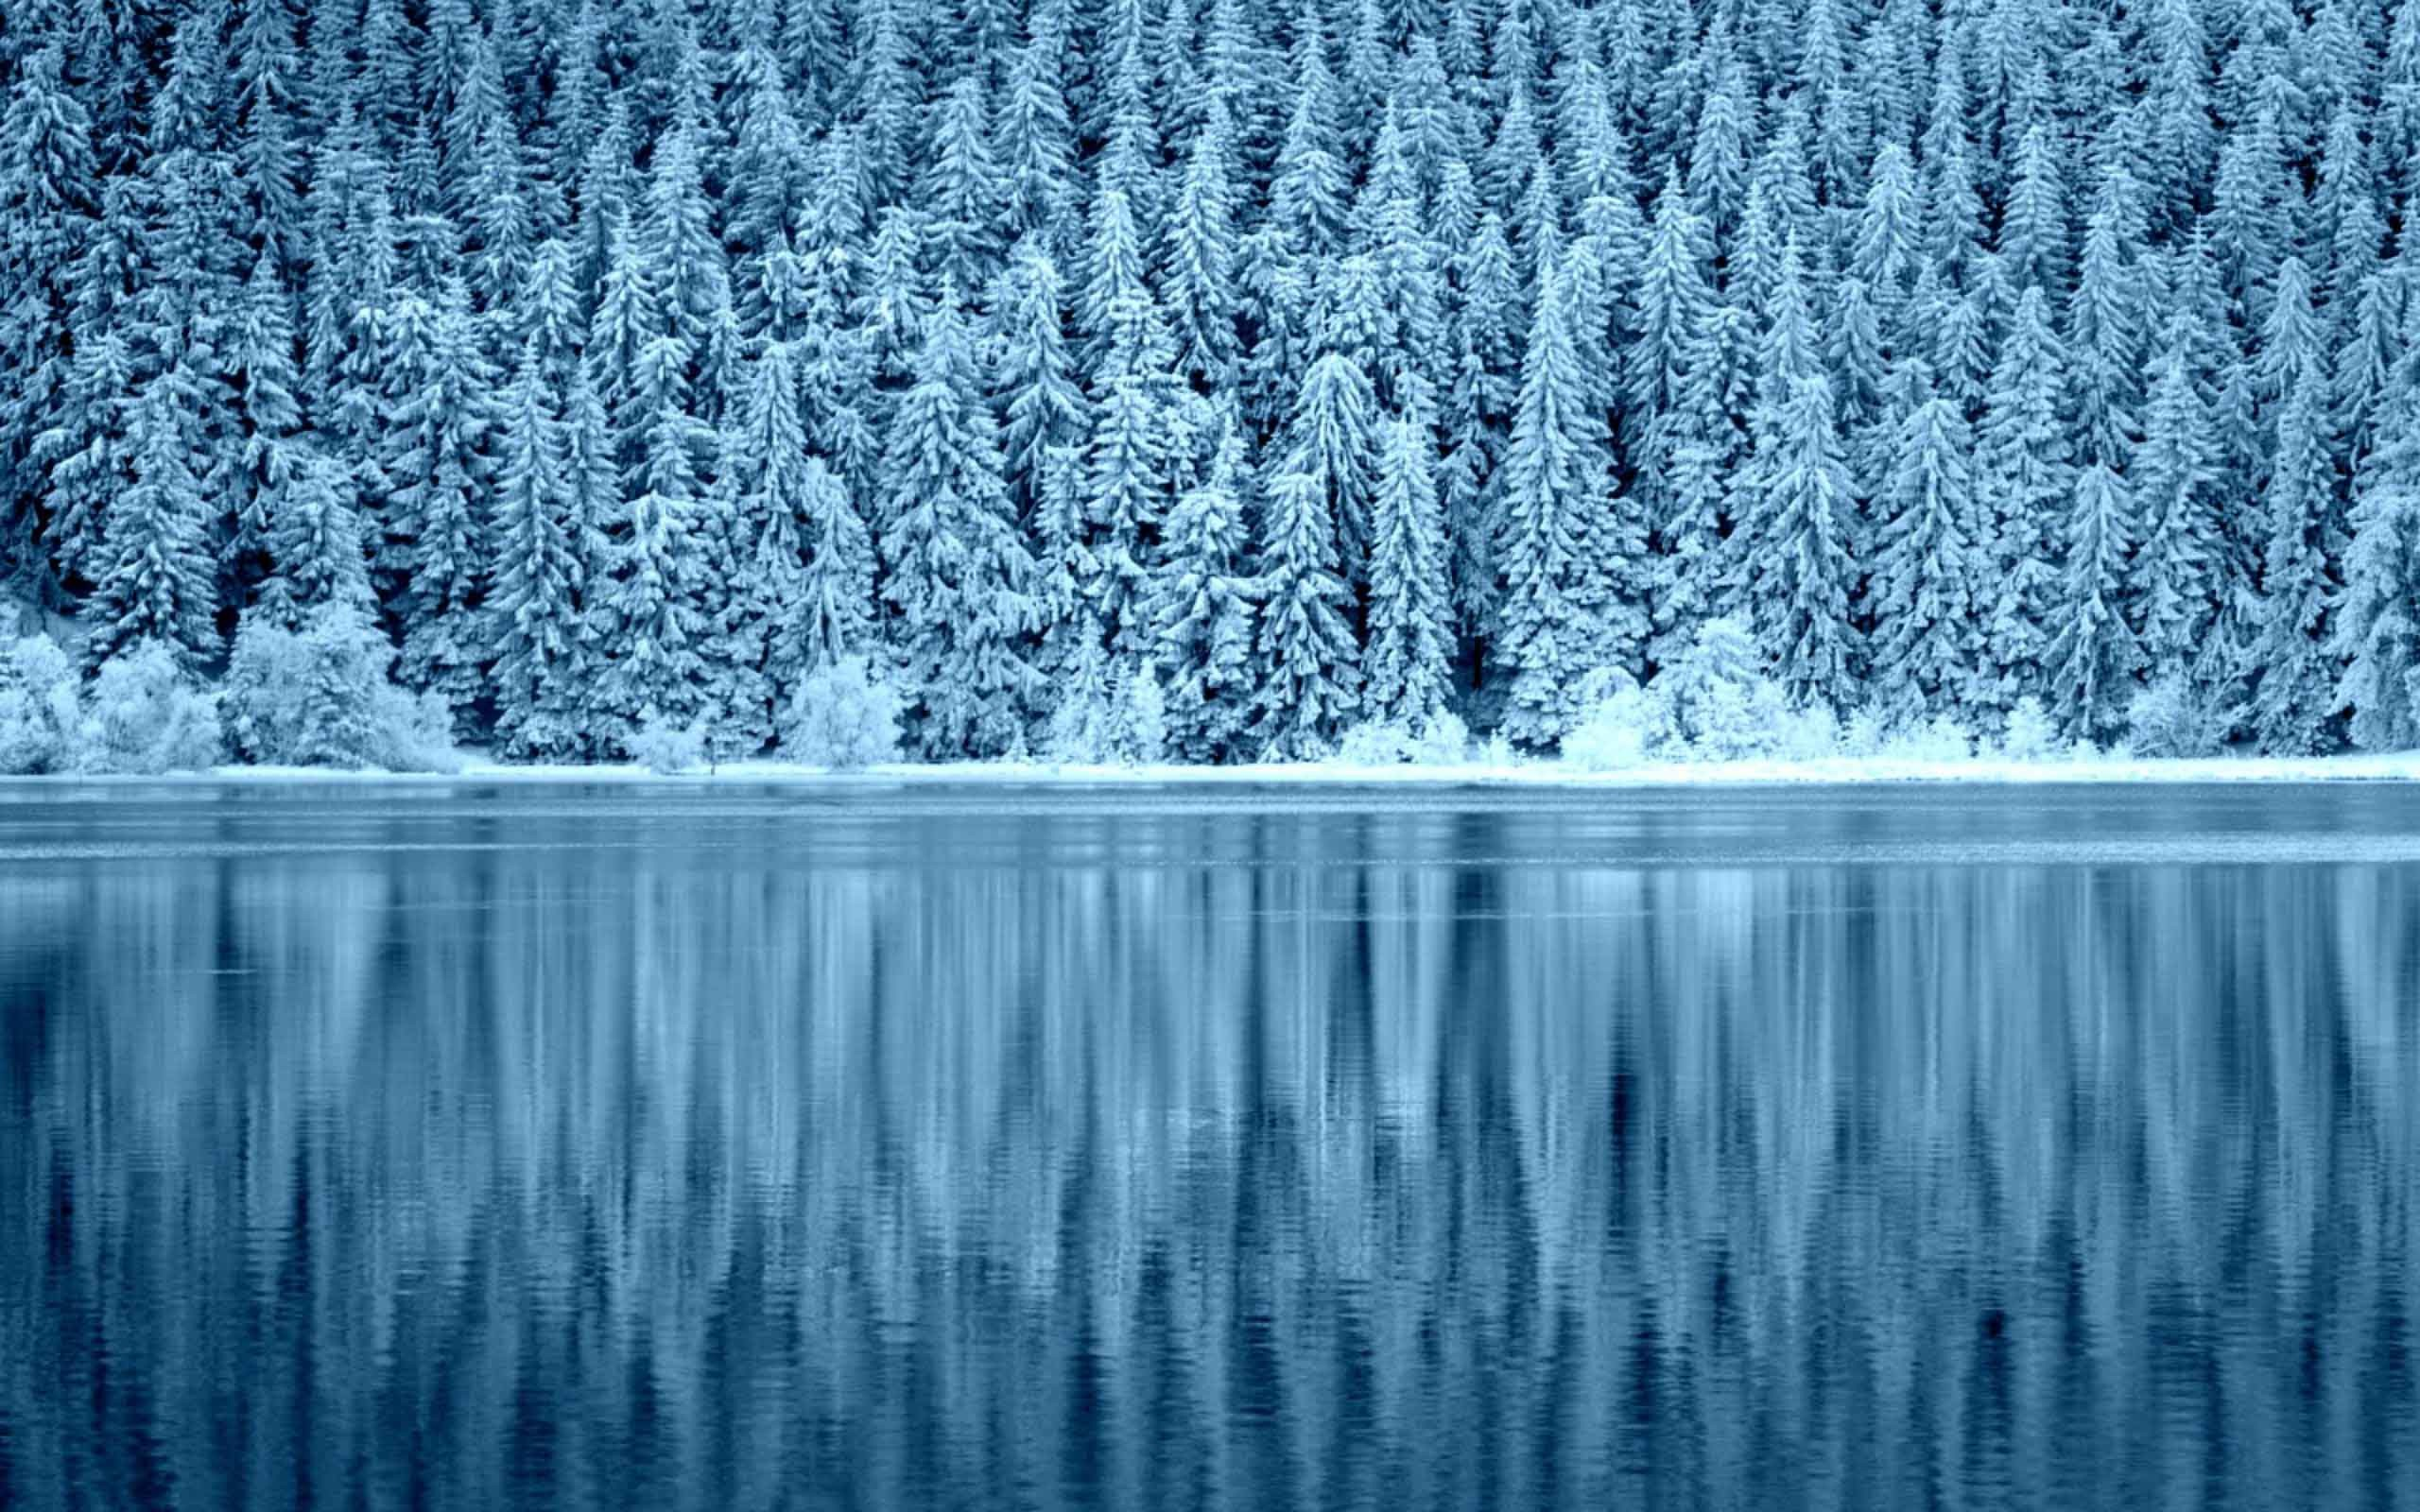 2560x1600 Lakes Winter Landscape Nature Snow Wallpaper HD For Desktop Widescreen Free  Download